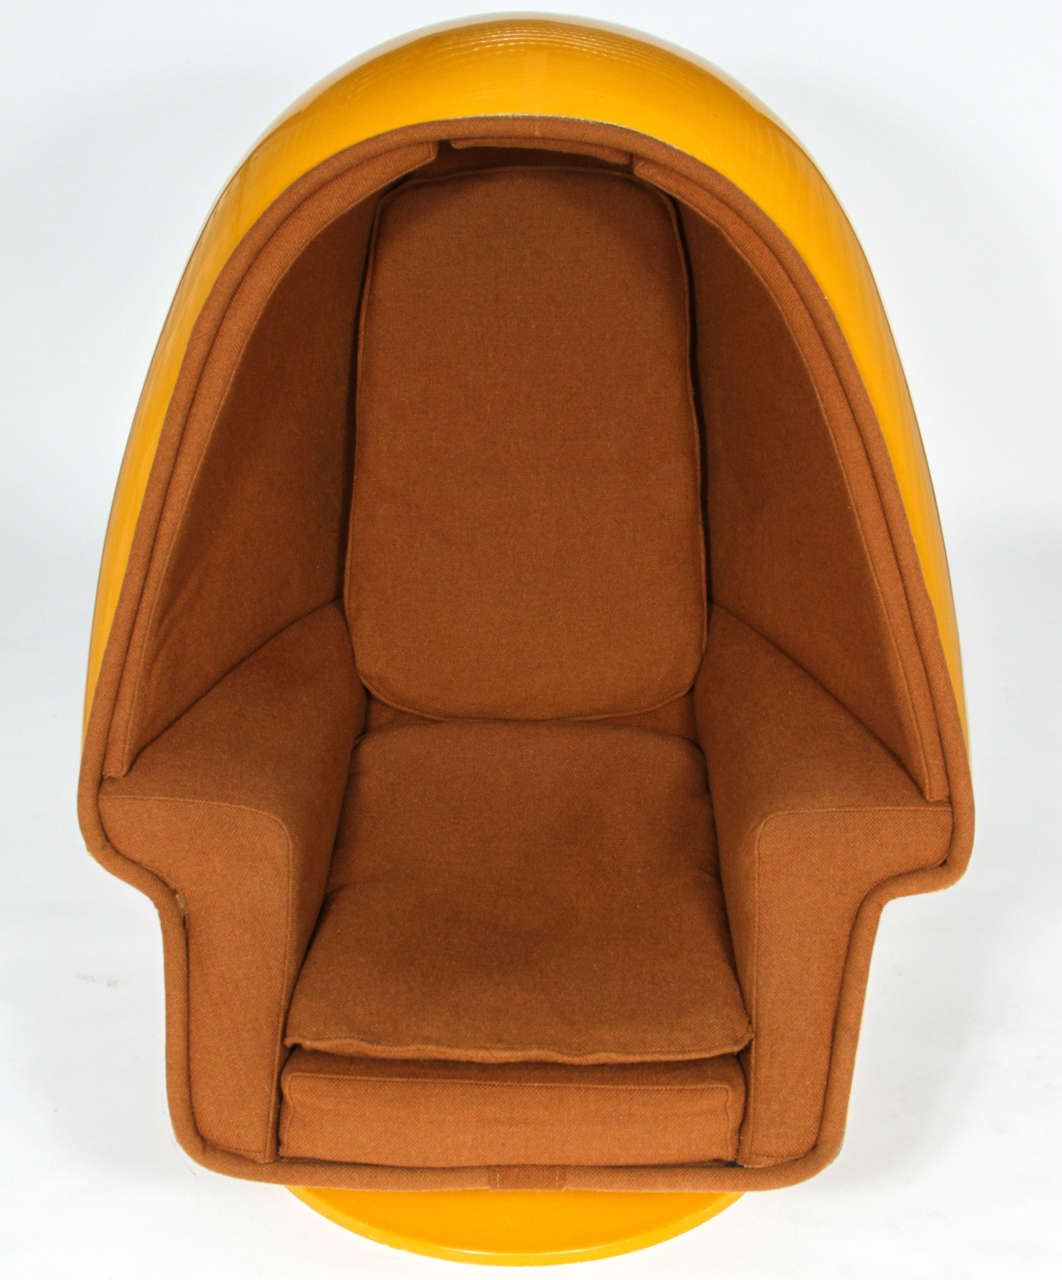 1970 vintage lee west alpha chamber egg pod stereo chair at 1stdibs. Black Bedroom Furniture Sets. Home Design Ideas